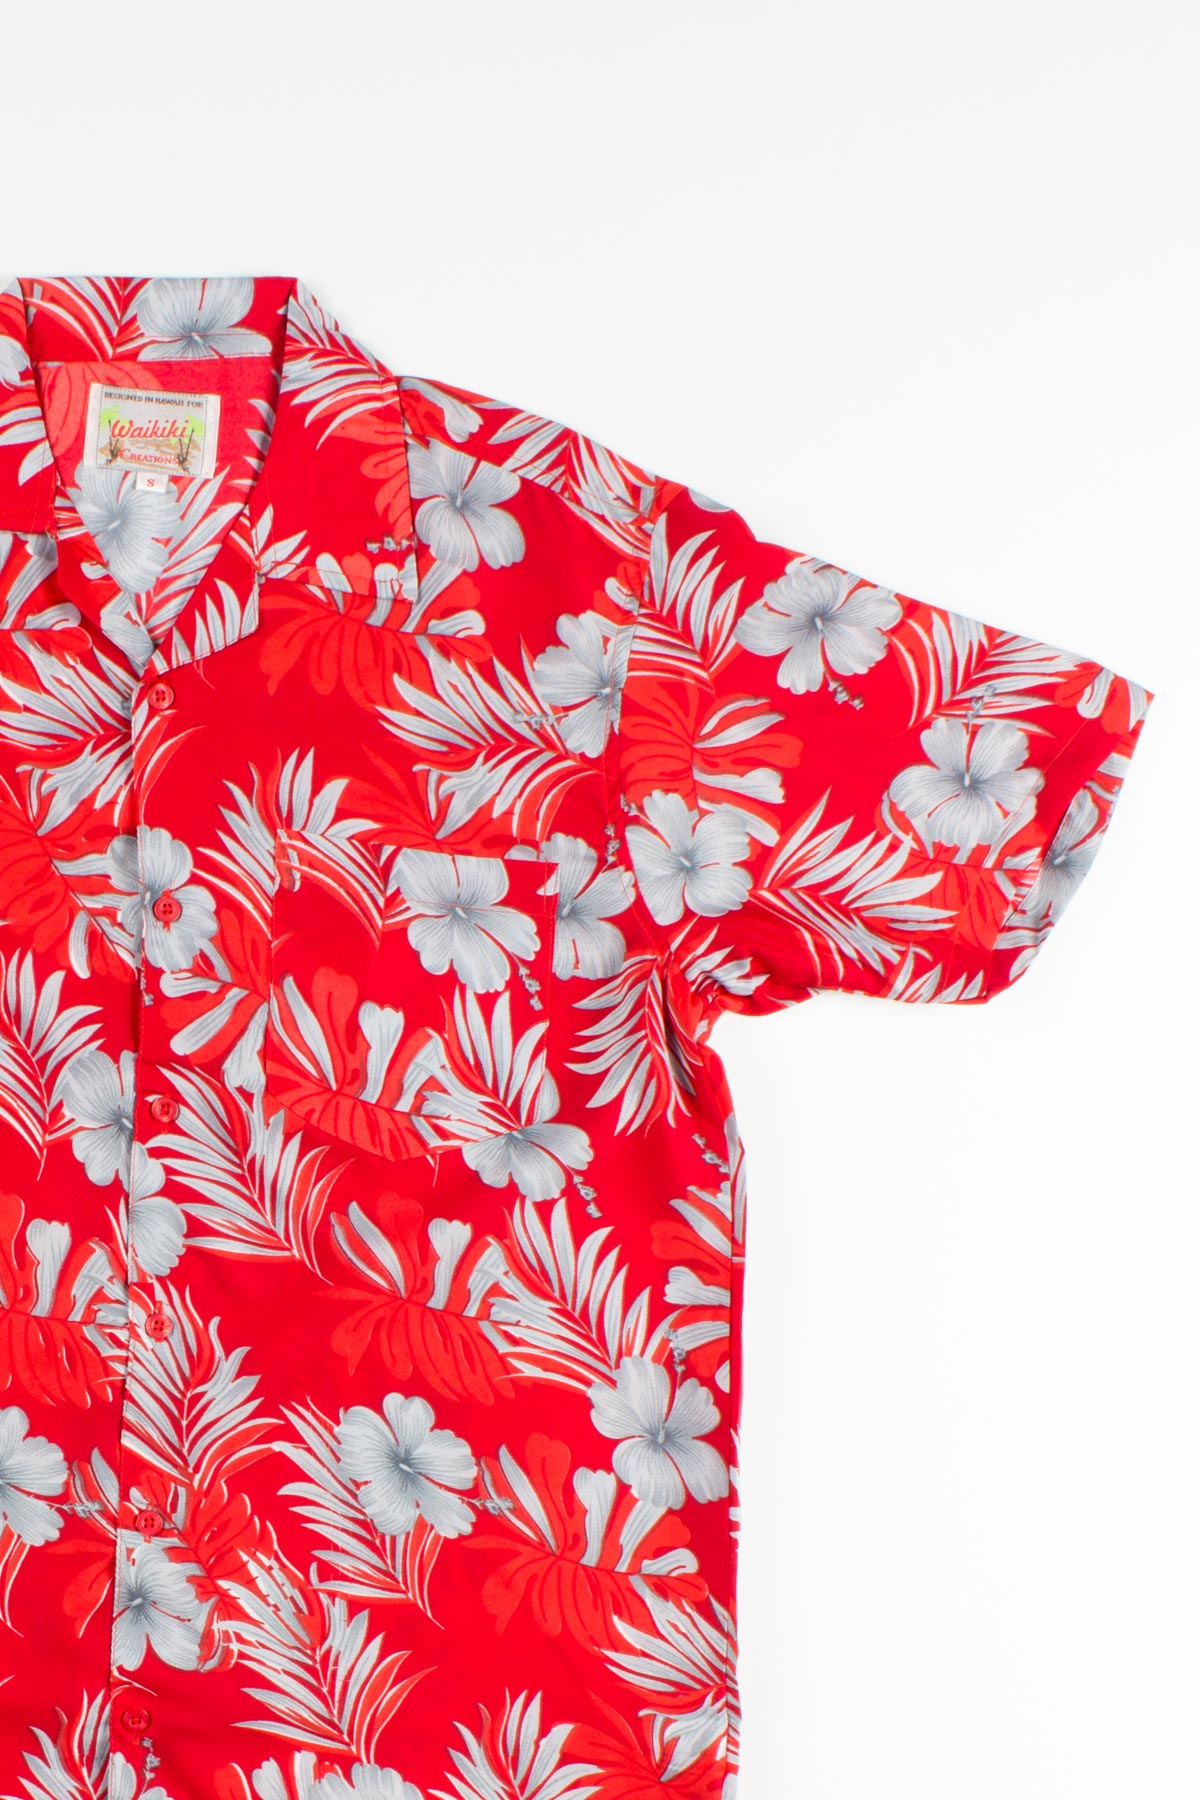 Shadowed Flower Print Hawaiian Shirt Ragstock